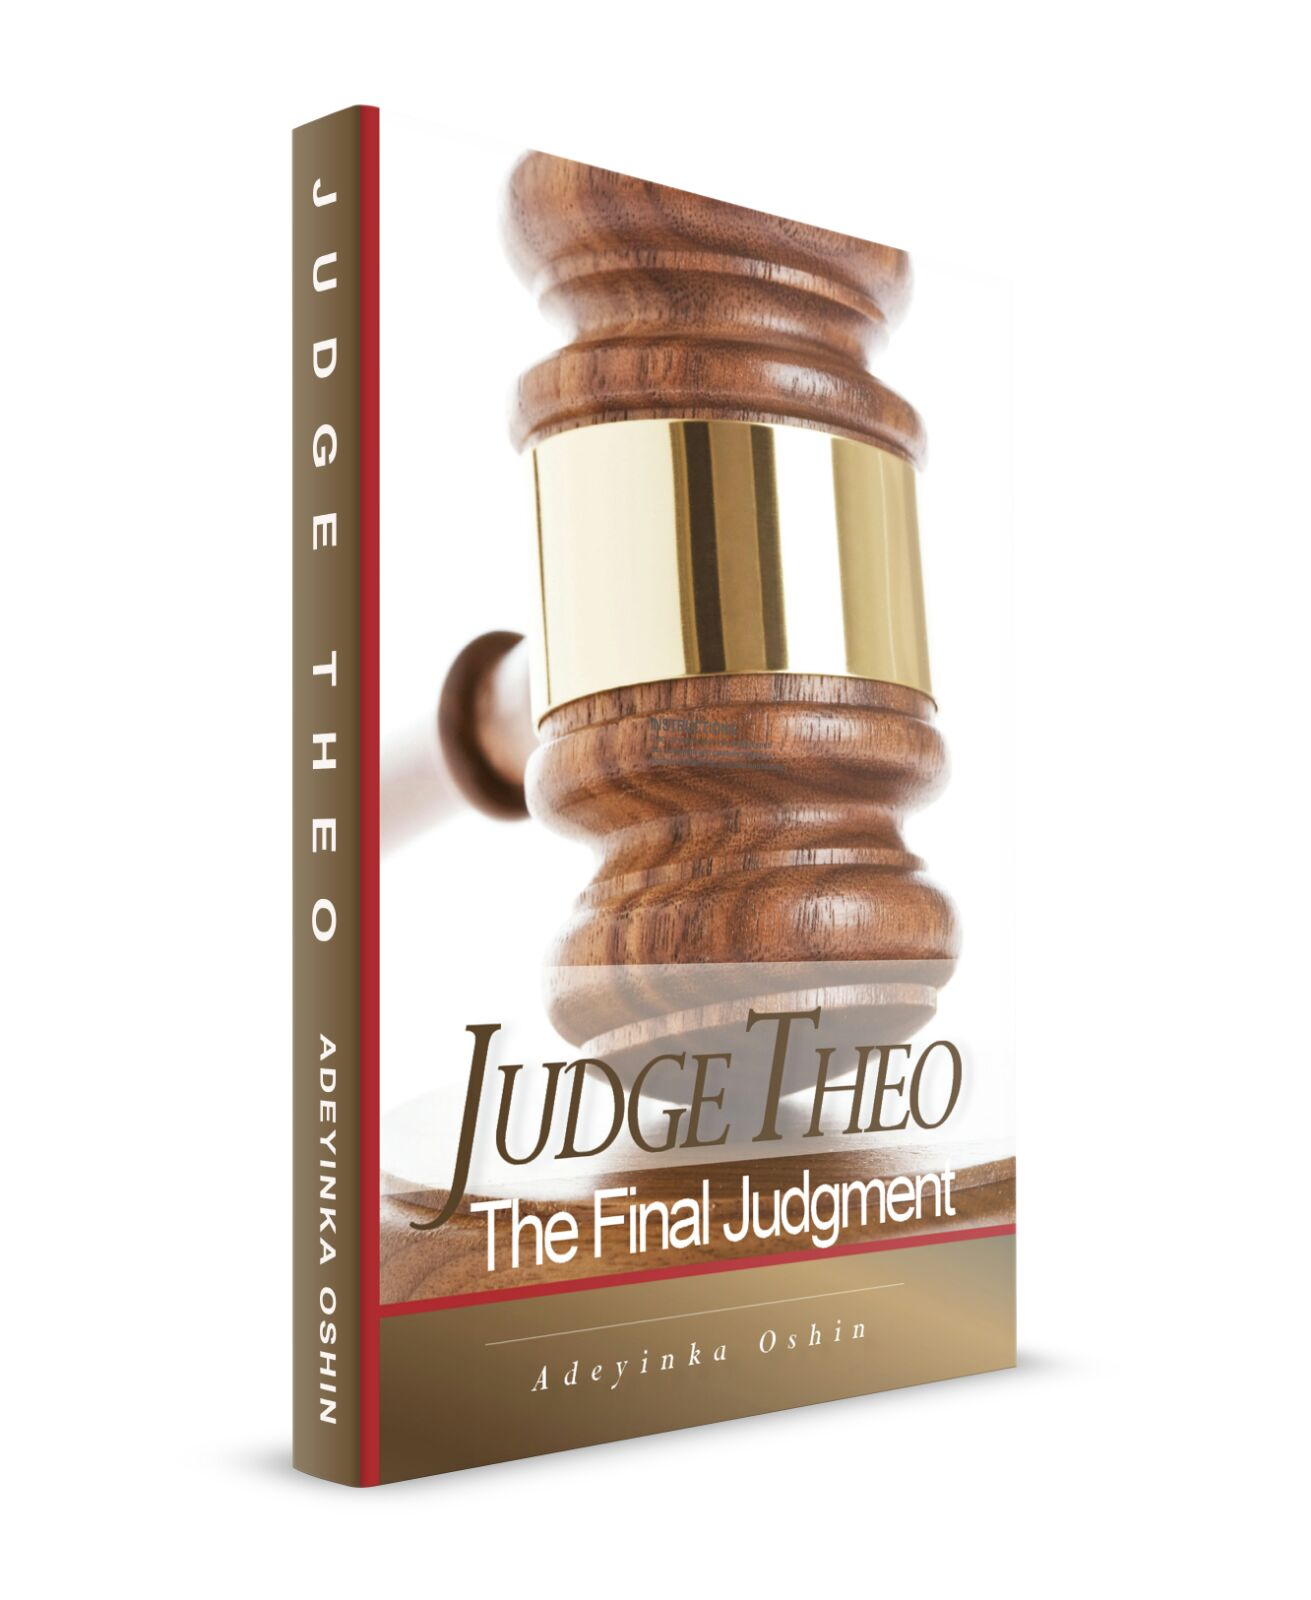 Judge Theo, The Final Judgment